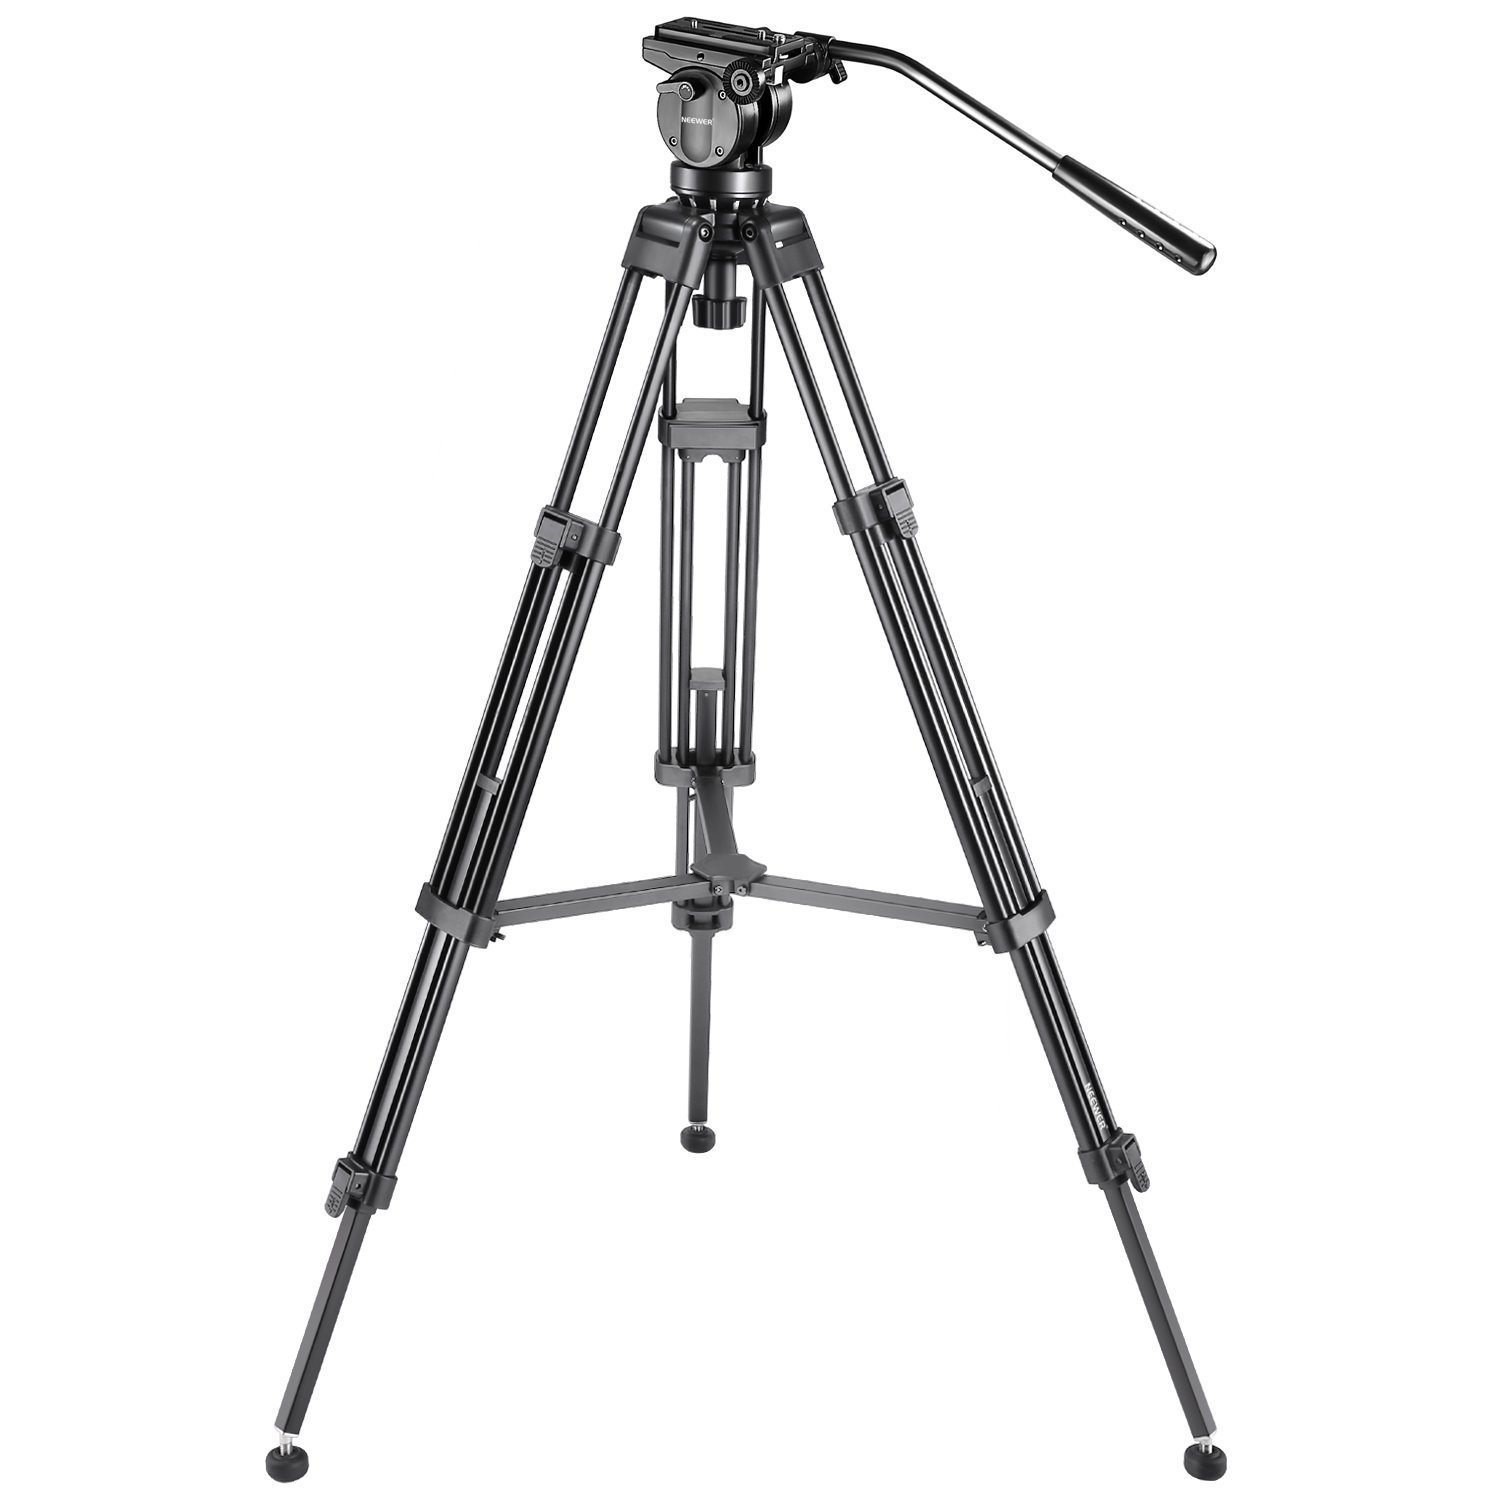 Neewer Professional 61 inches/155 Centimeters Aluminum Alloy Video Camera Tripod with 360 Degree Fluid Drag Head,1/4 and 3/8-inch Quick Release Plate and Bag,Load up to 13.2 pounds/6 kilograms by Neewer